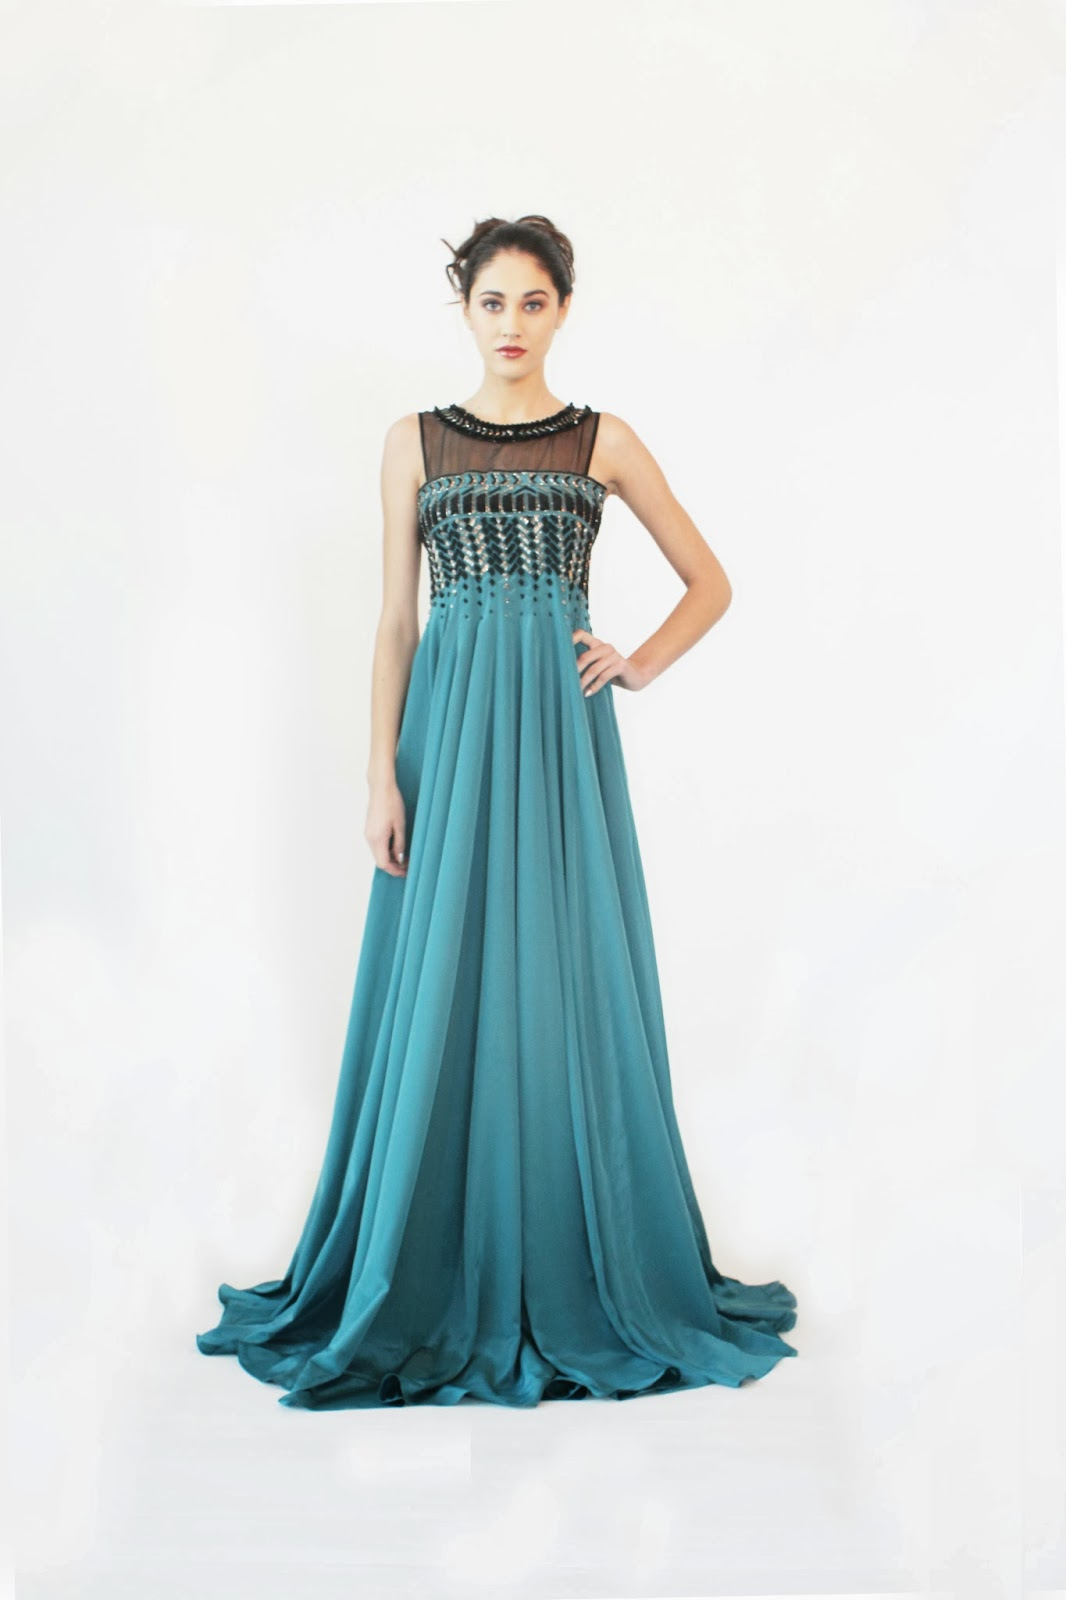 Jade Innana Collection - Glamorous Evening Gowns and Playful Dresses ...